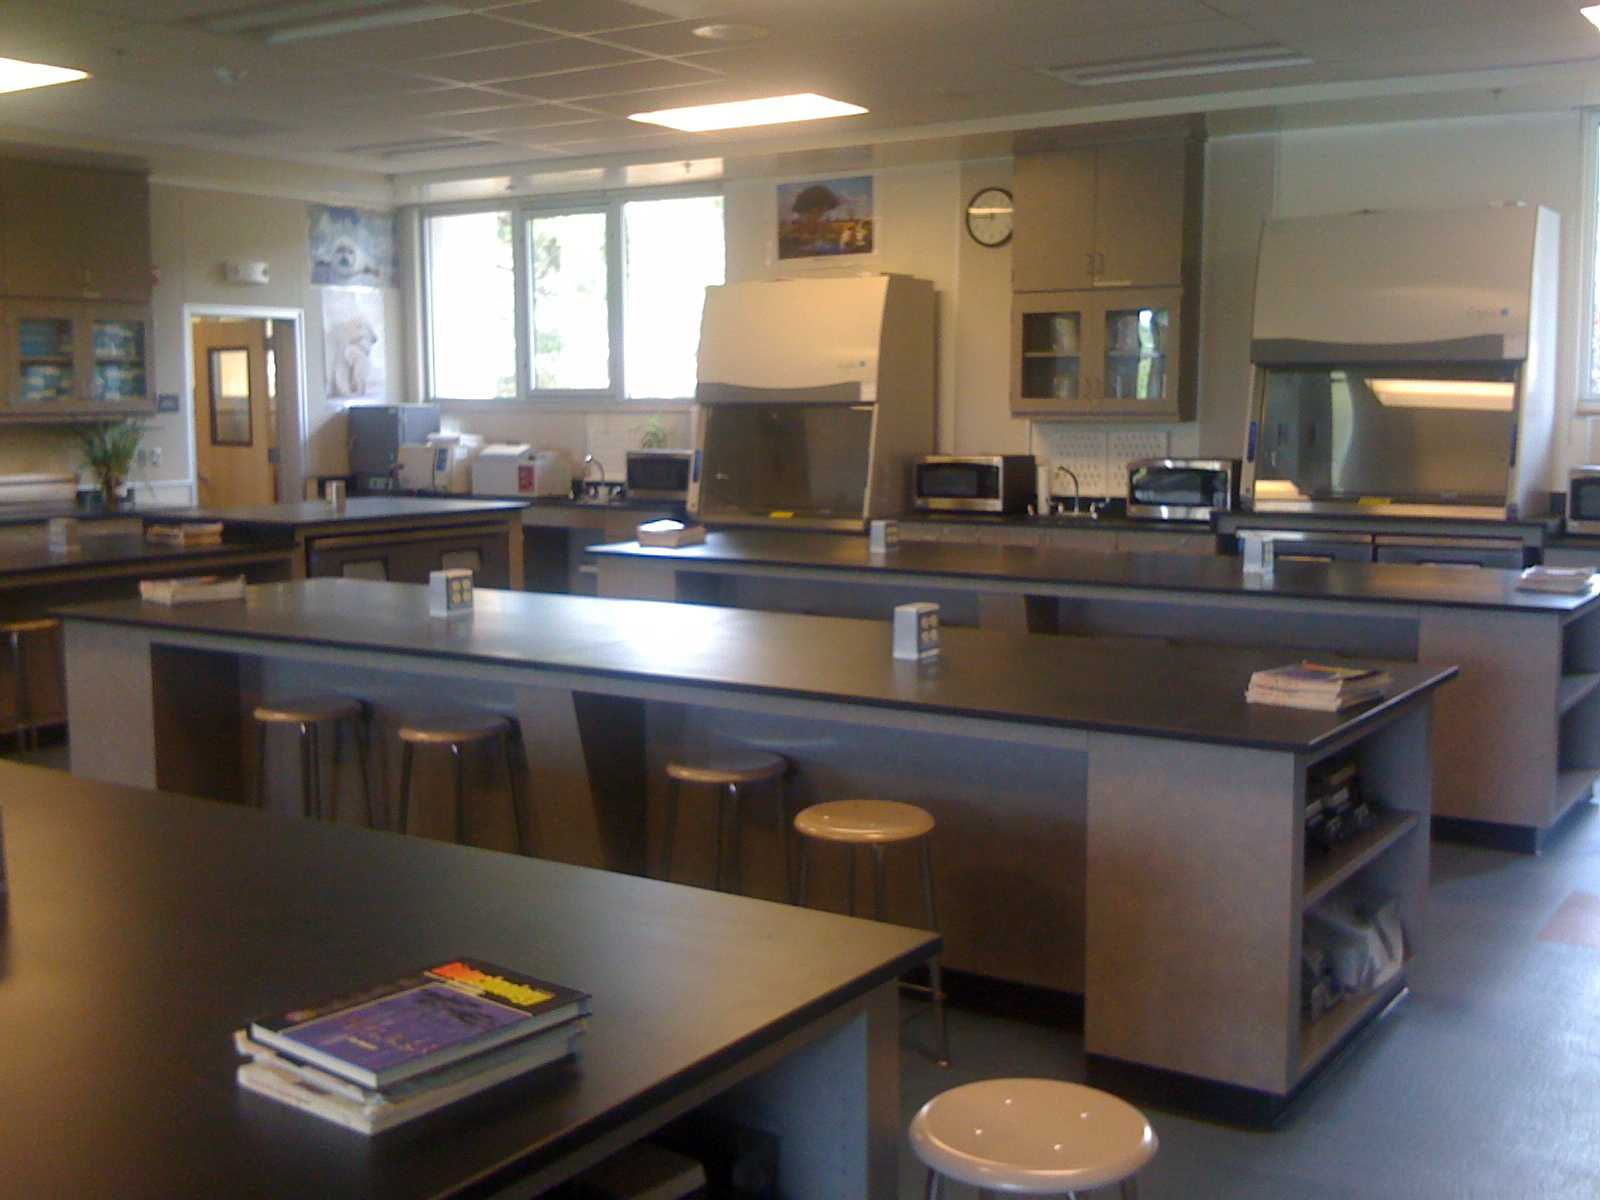 inside classroom U21 in the new biotech building